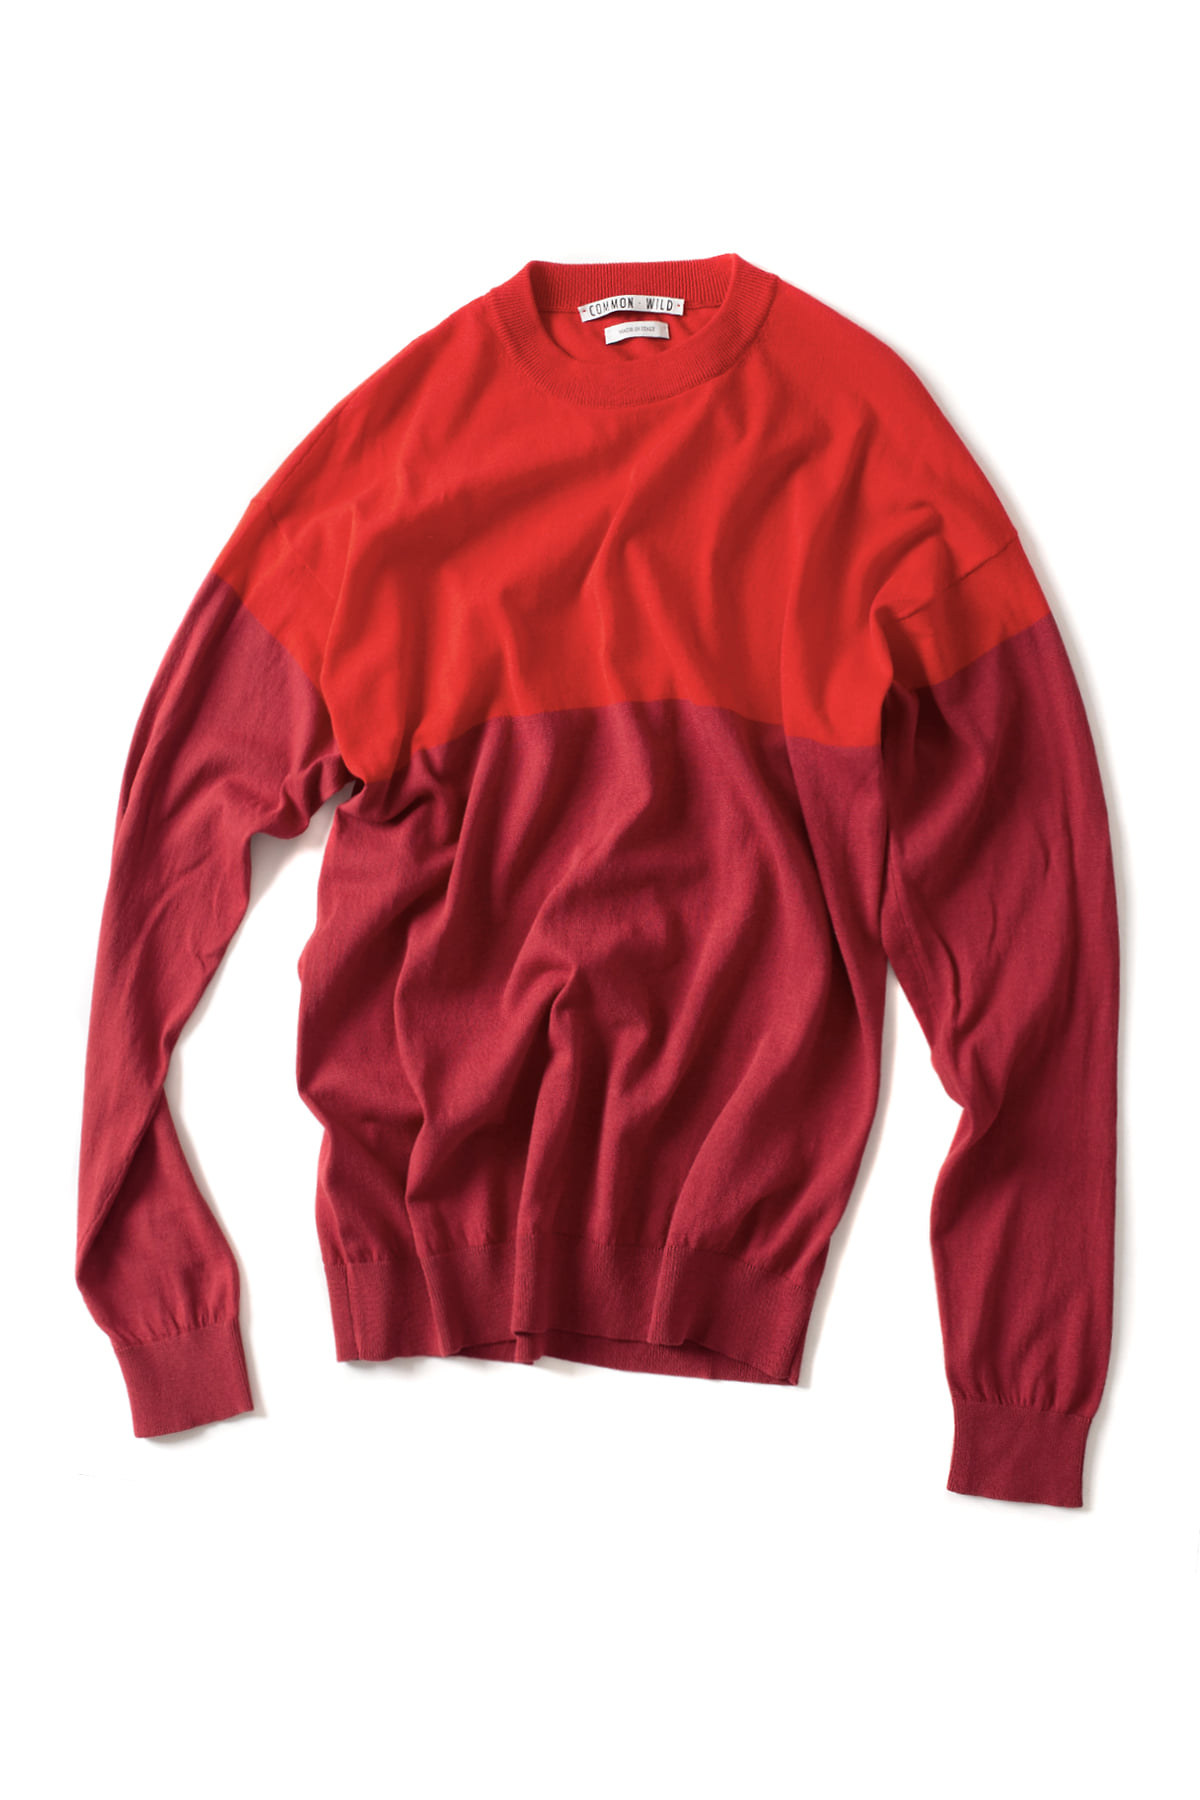 COMMON WILD : Round Neck Sweater (Red)